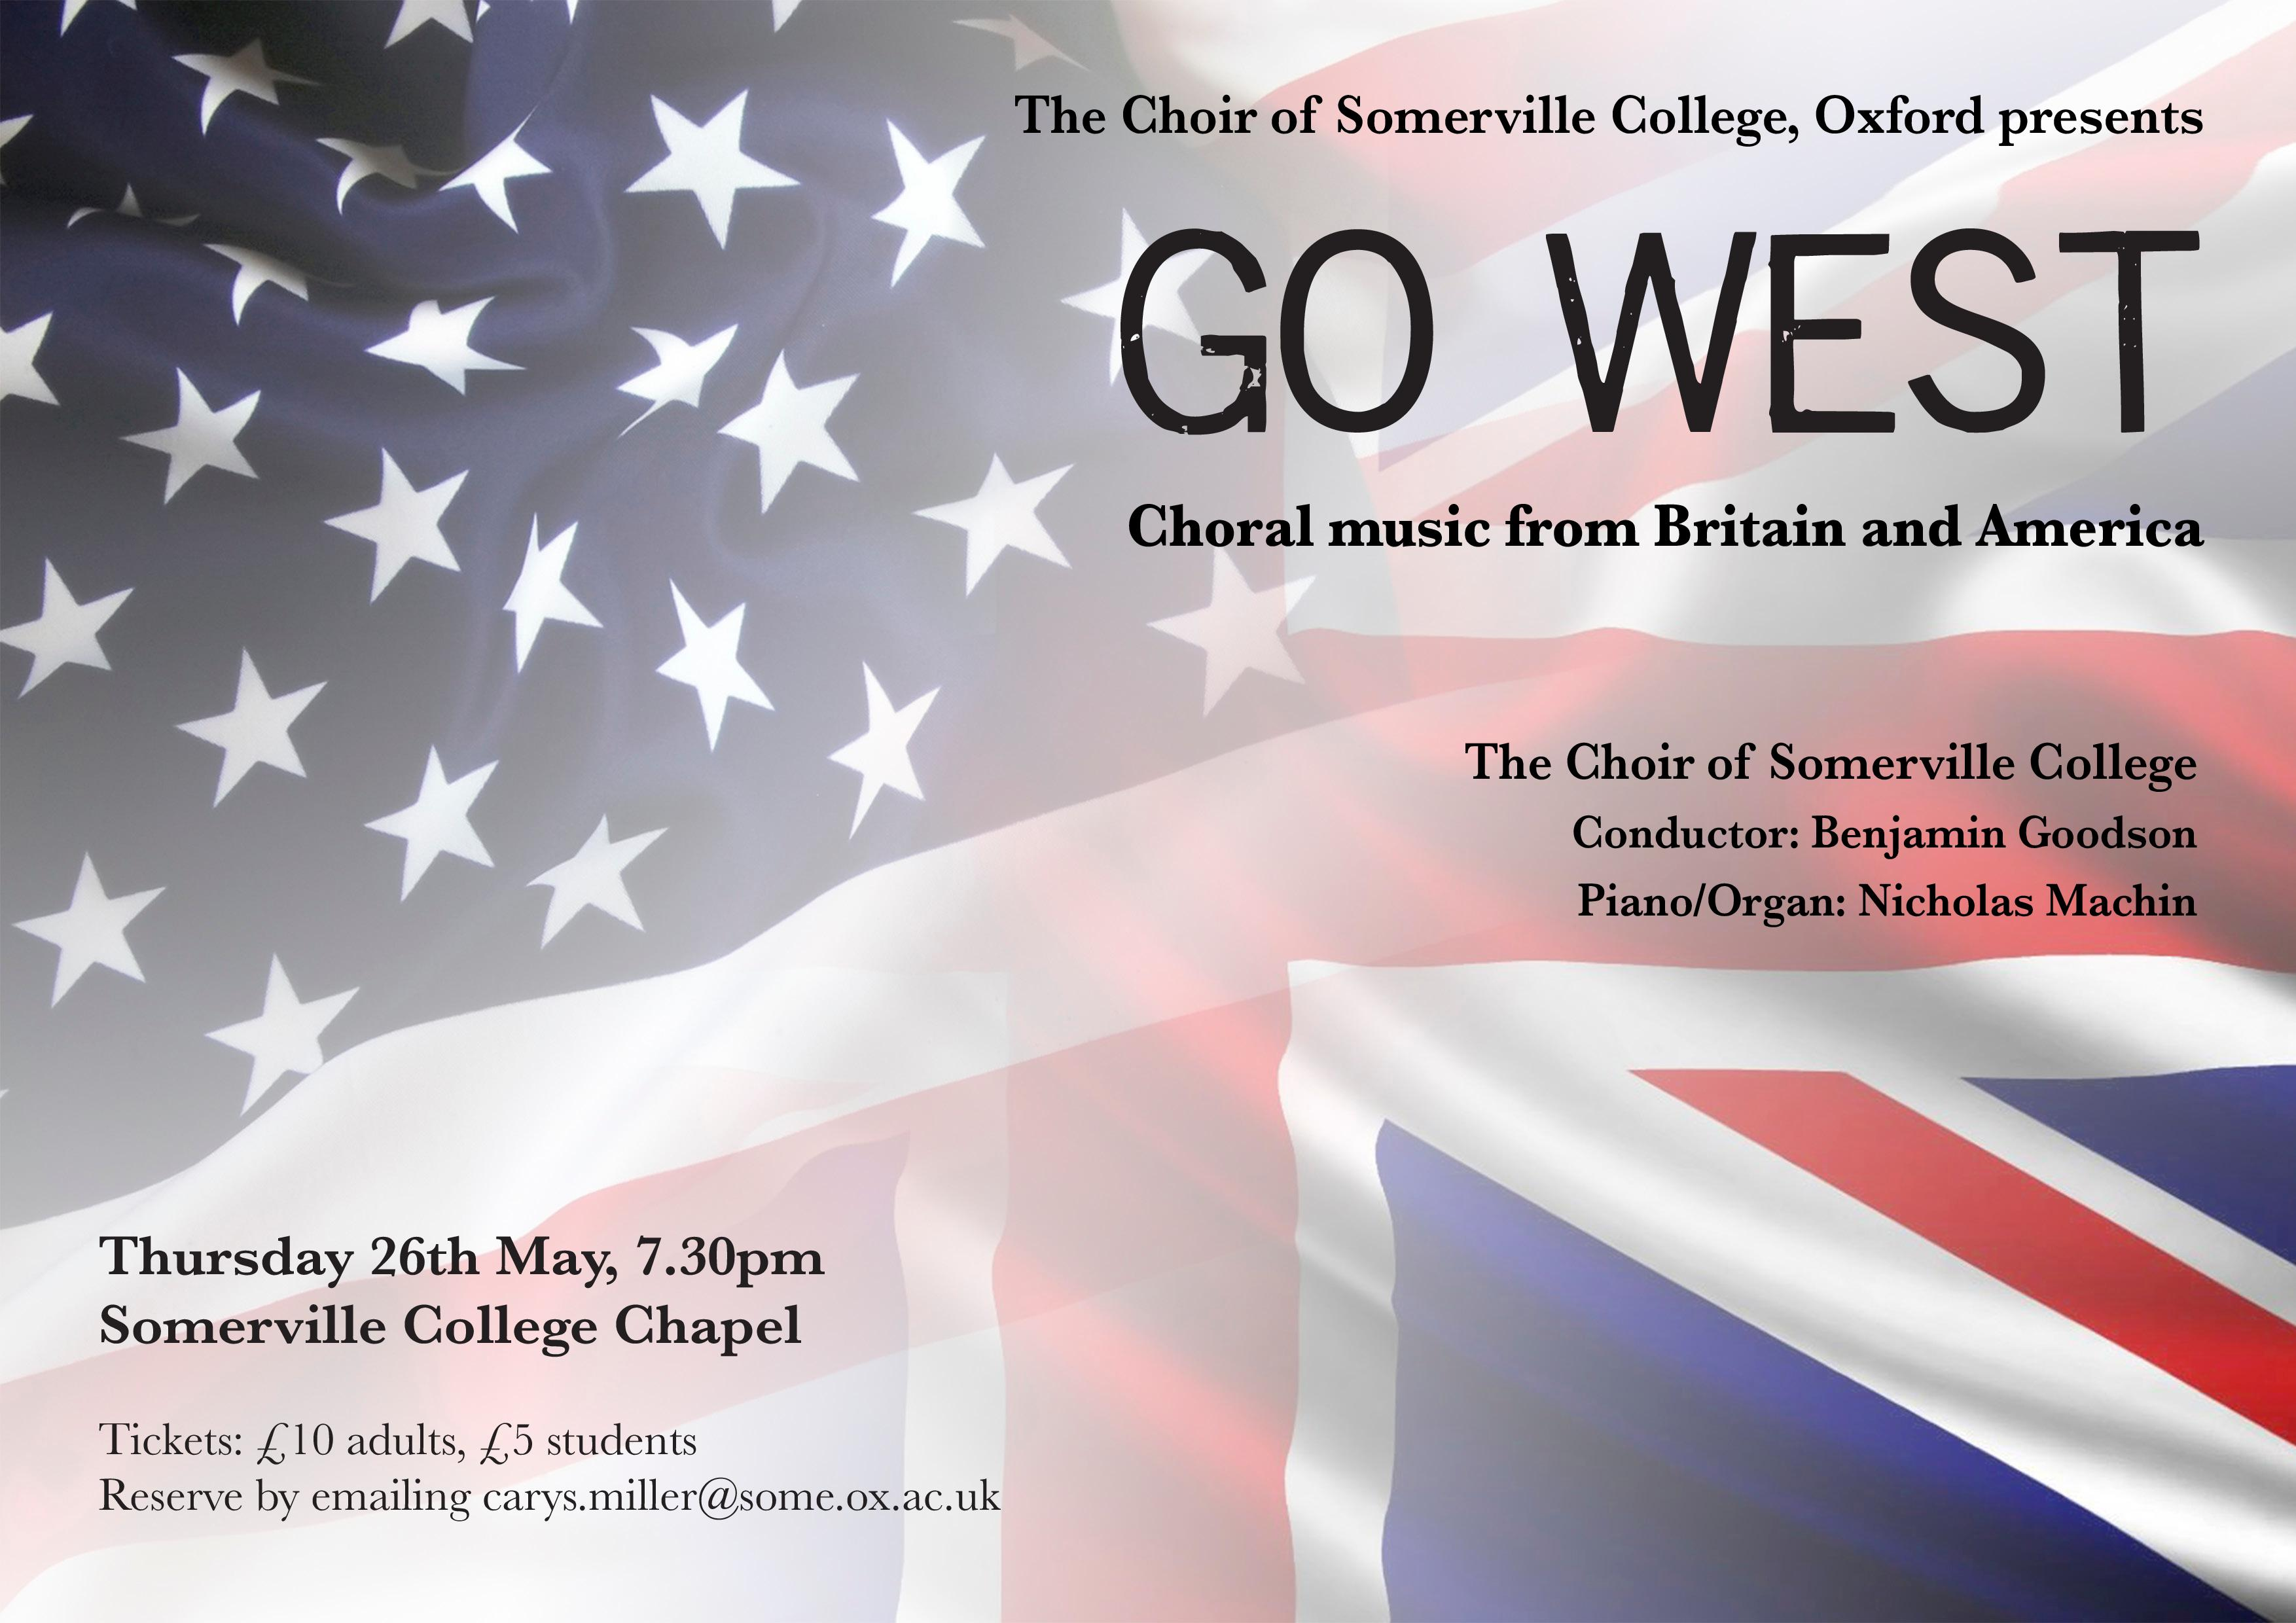 26th May, Somerville College Choir – GO WEST, choral music from Britain and America